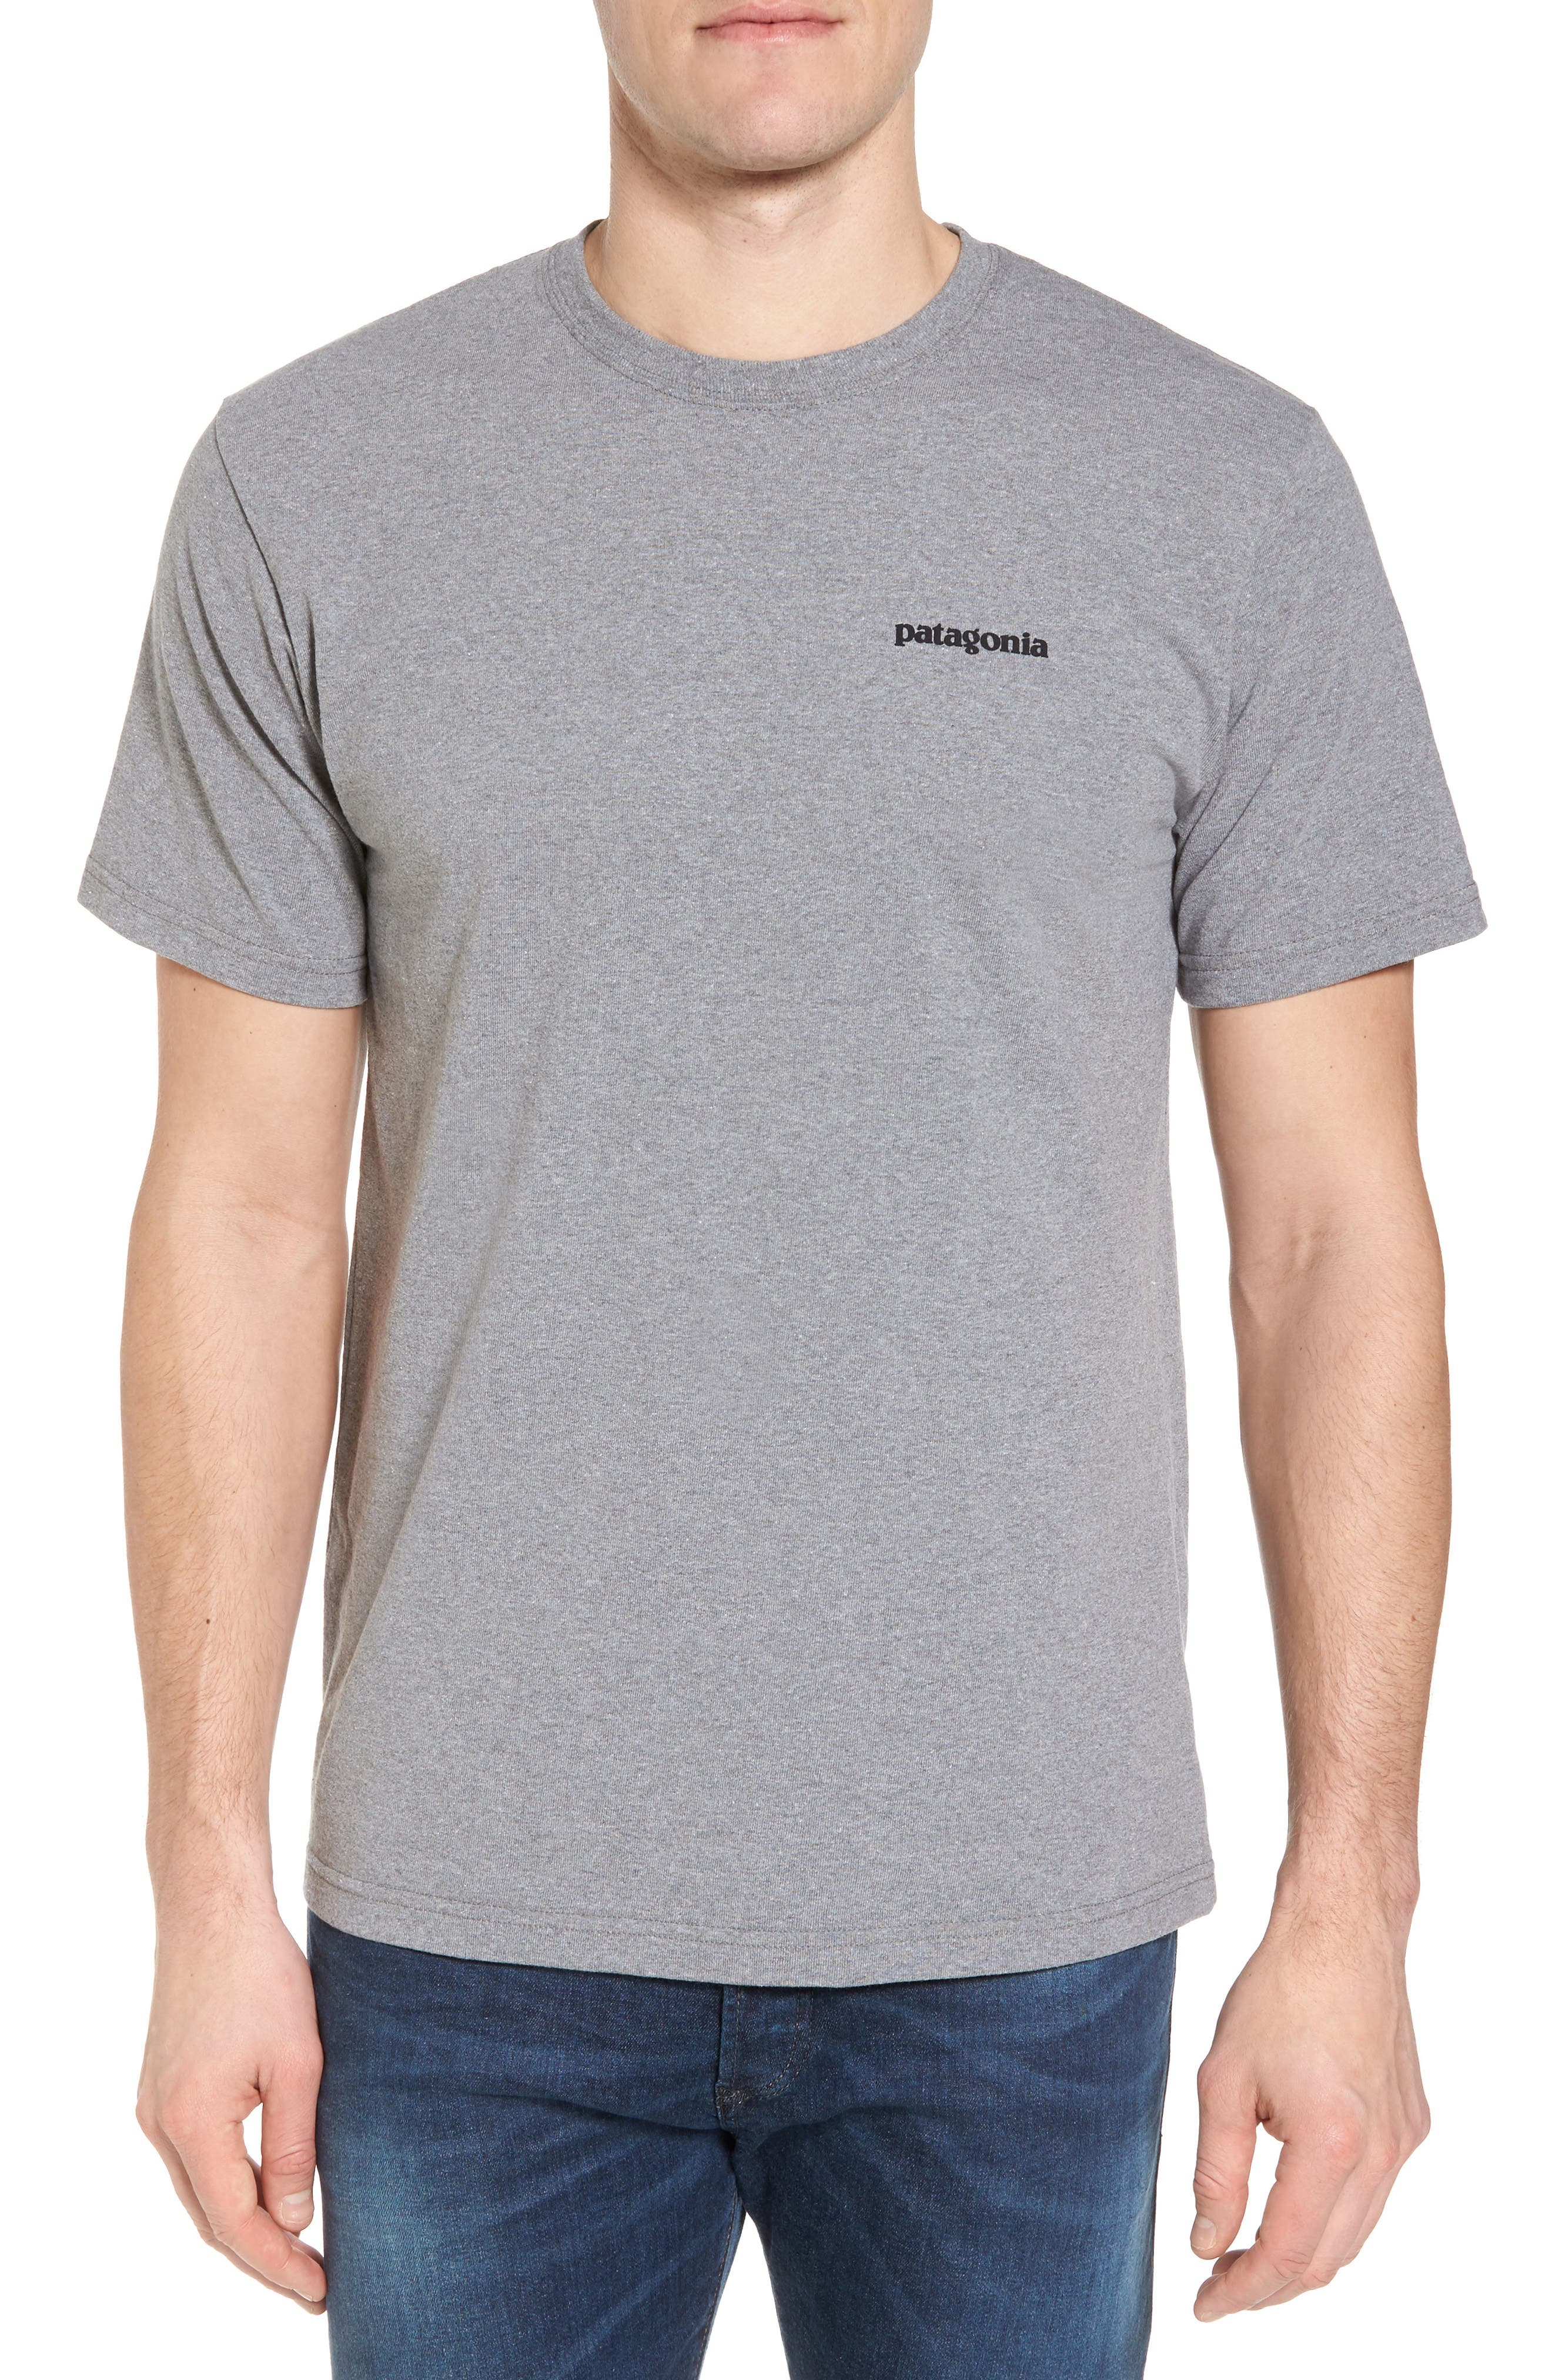 a5eee77bb06d patagonia tshirts | Nordstrom